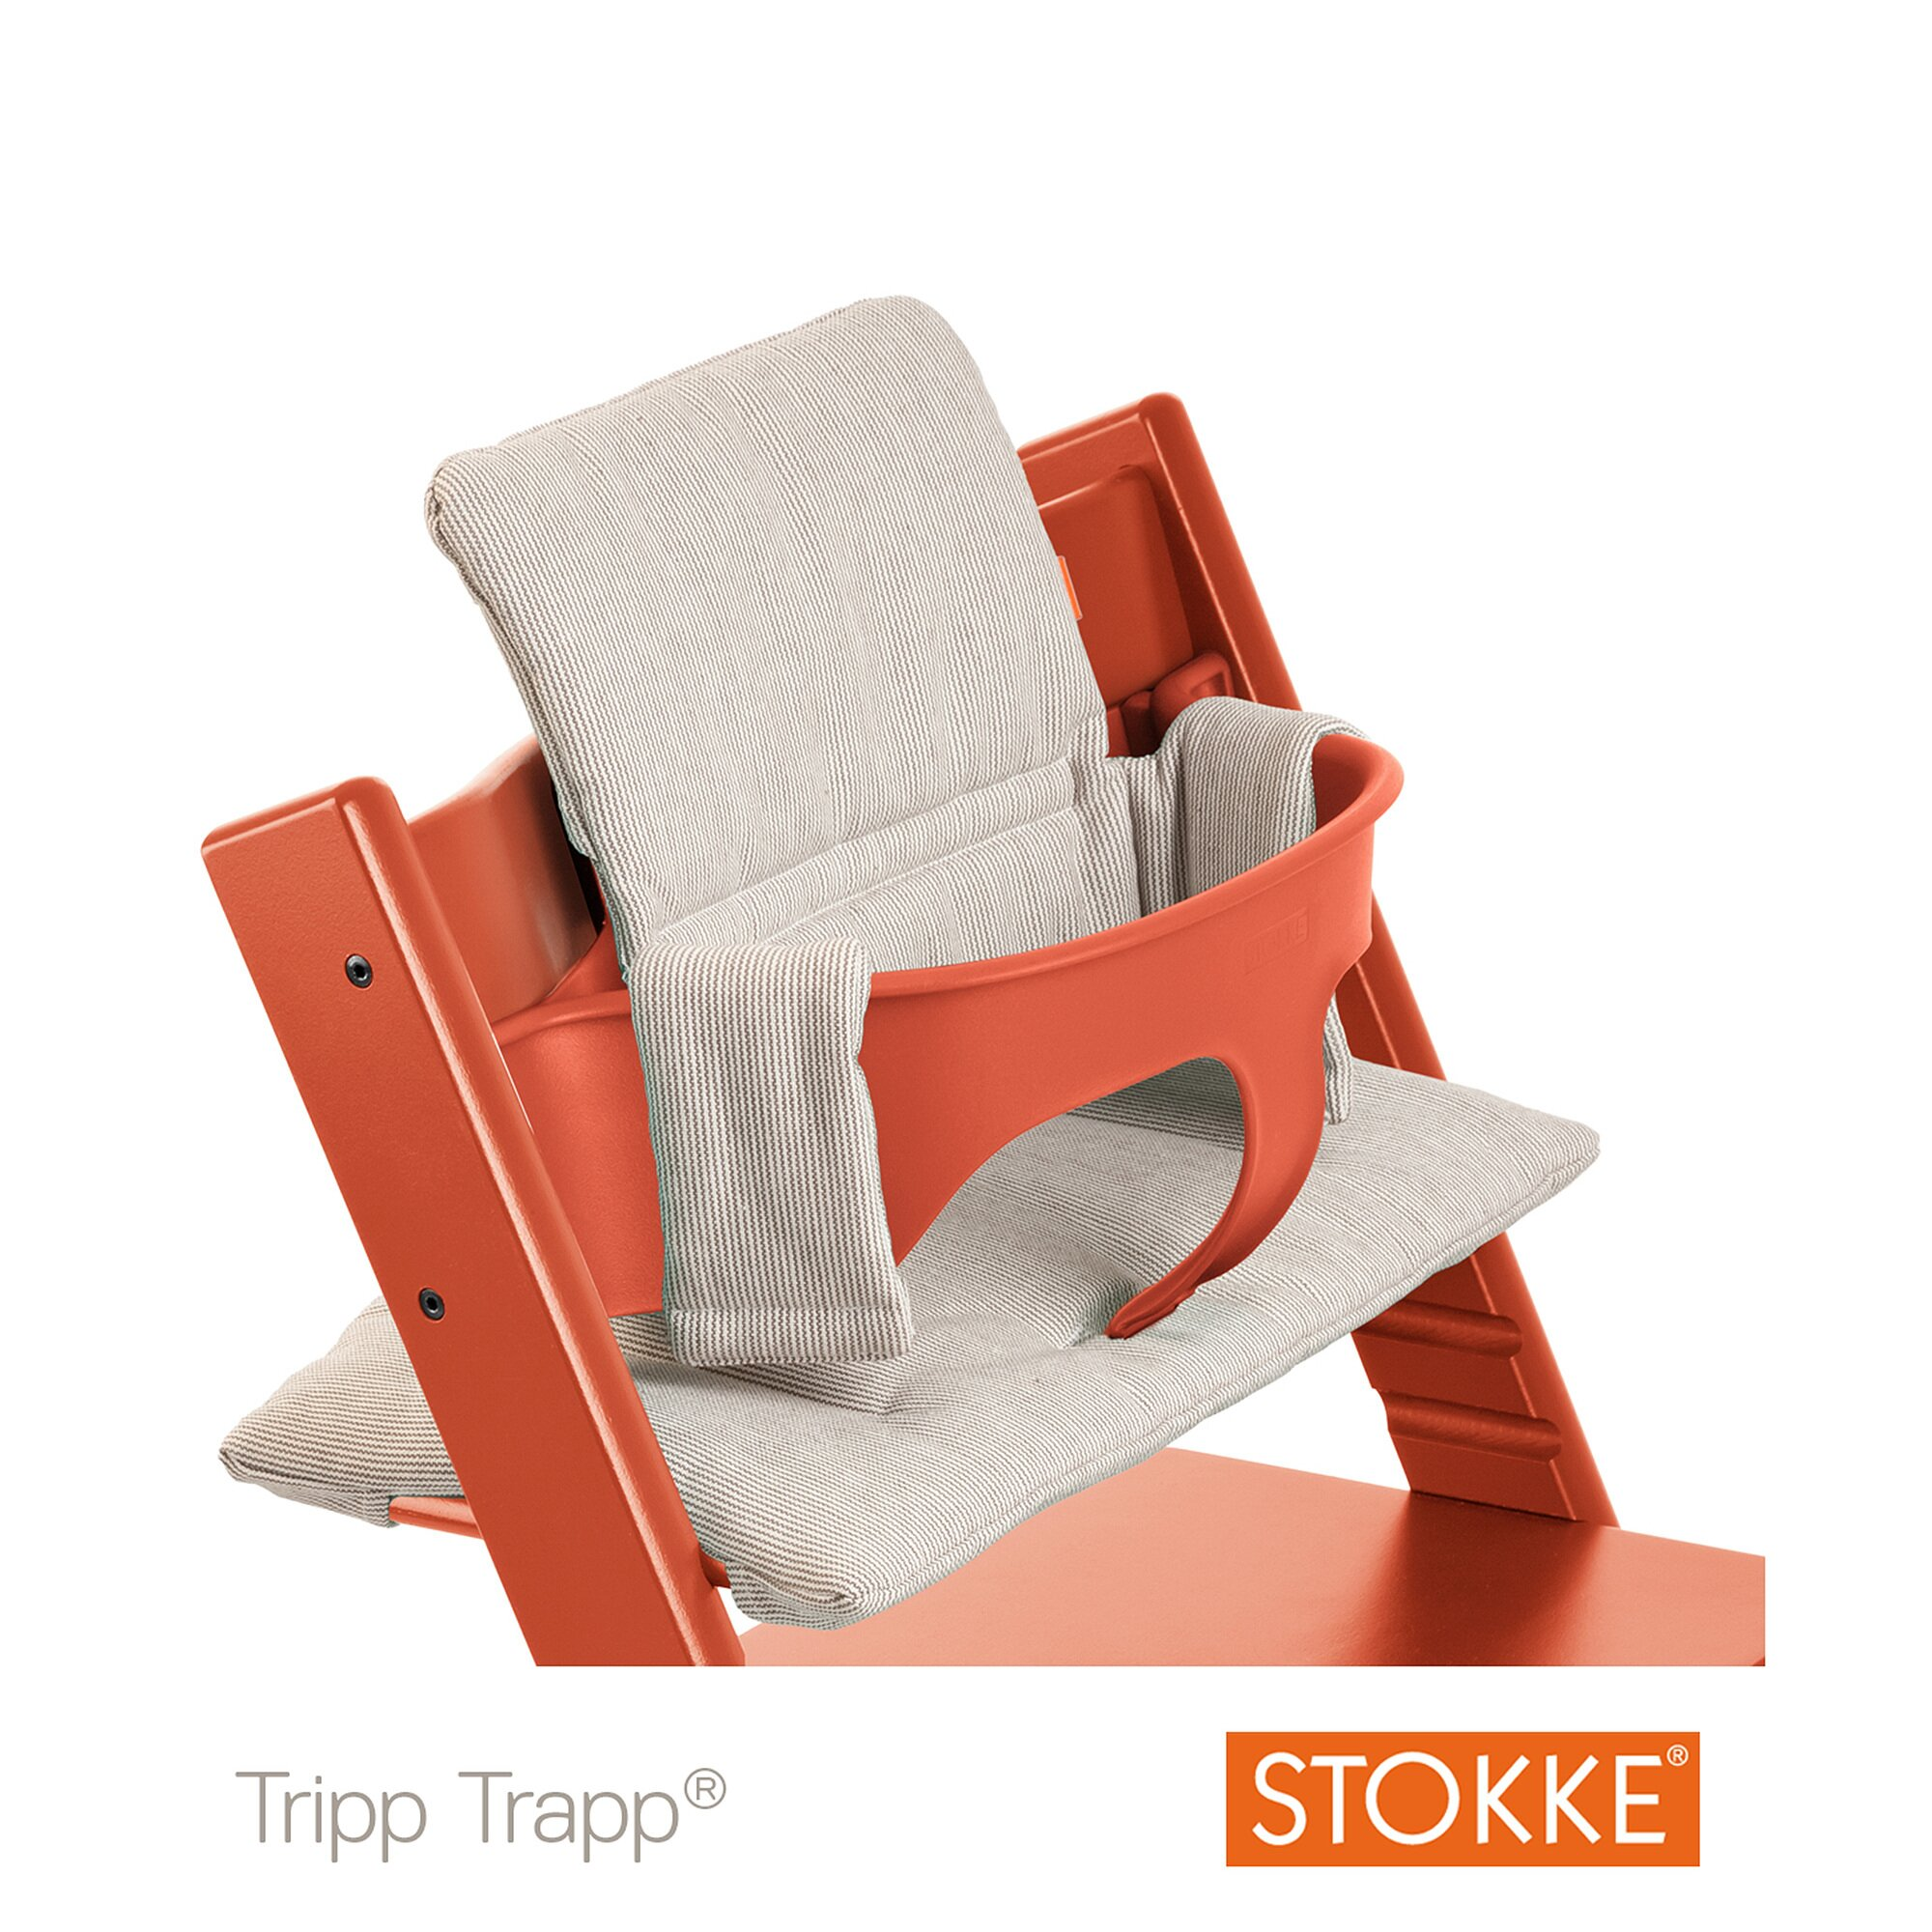 Stokke tripp trapp reviews 100 chaise trip trap l chaise for Chaise tripp trapp